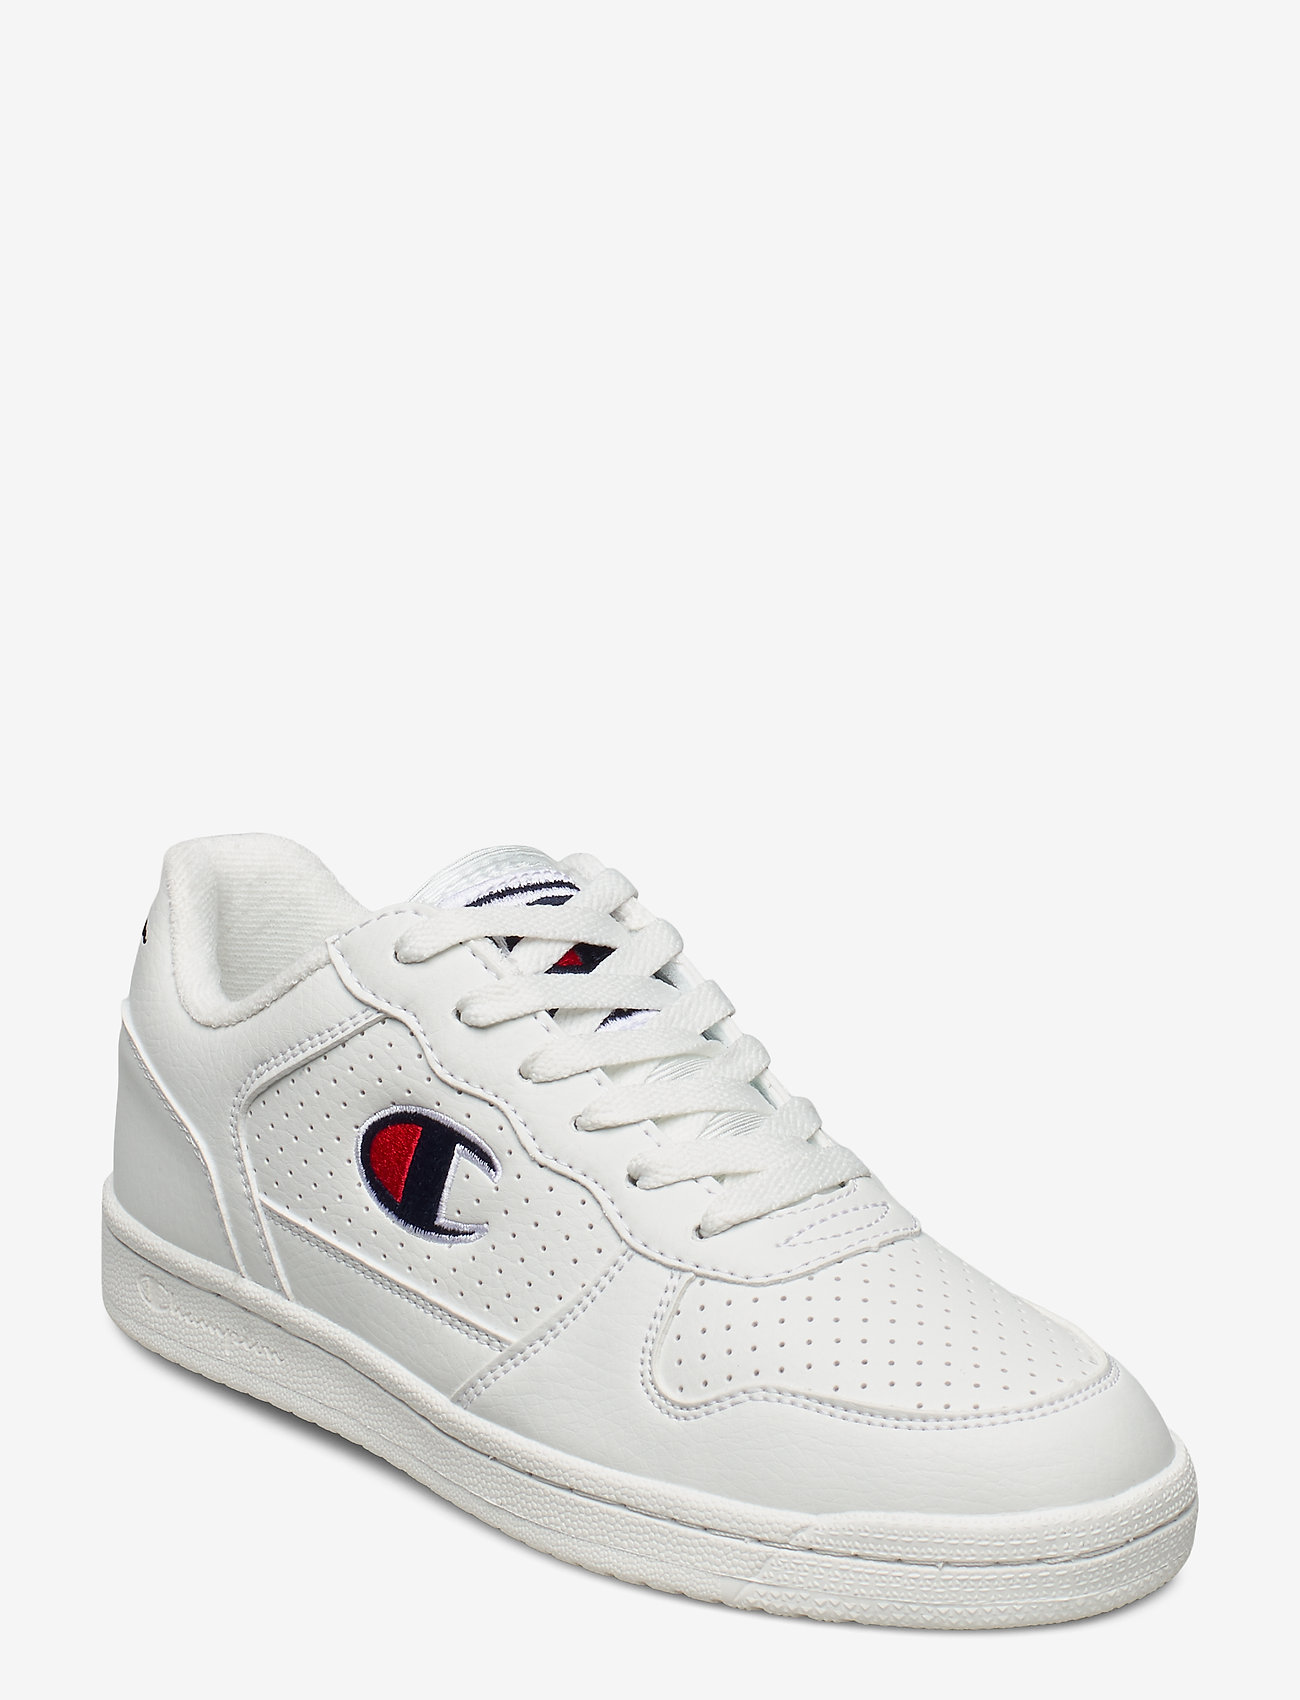 champion chicago low off 58% - www